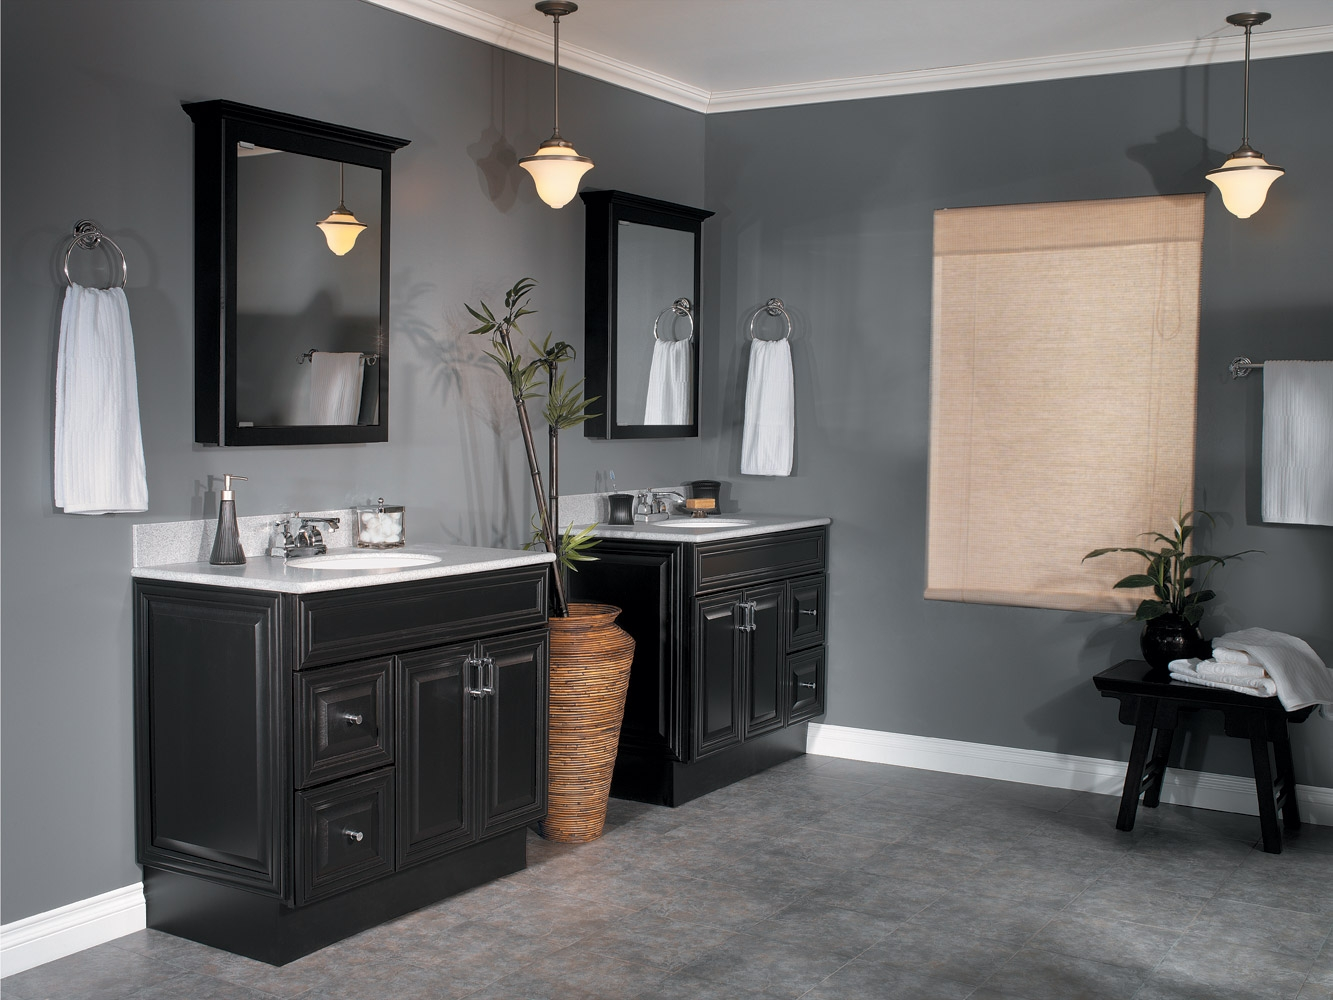 Permalink to Black Cabinets In Master Bathroom